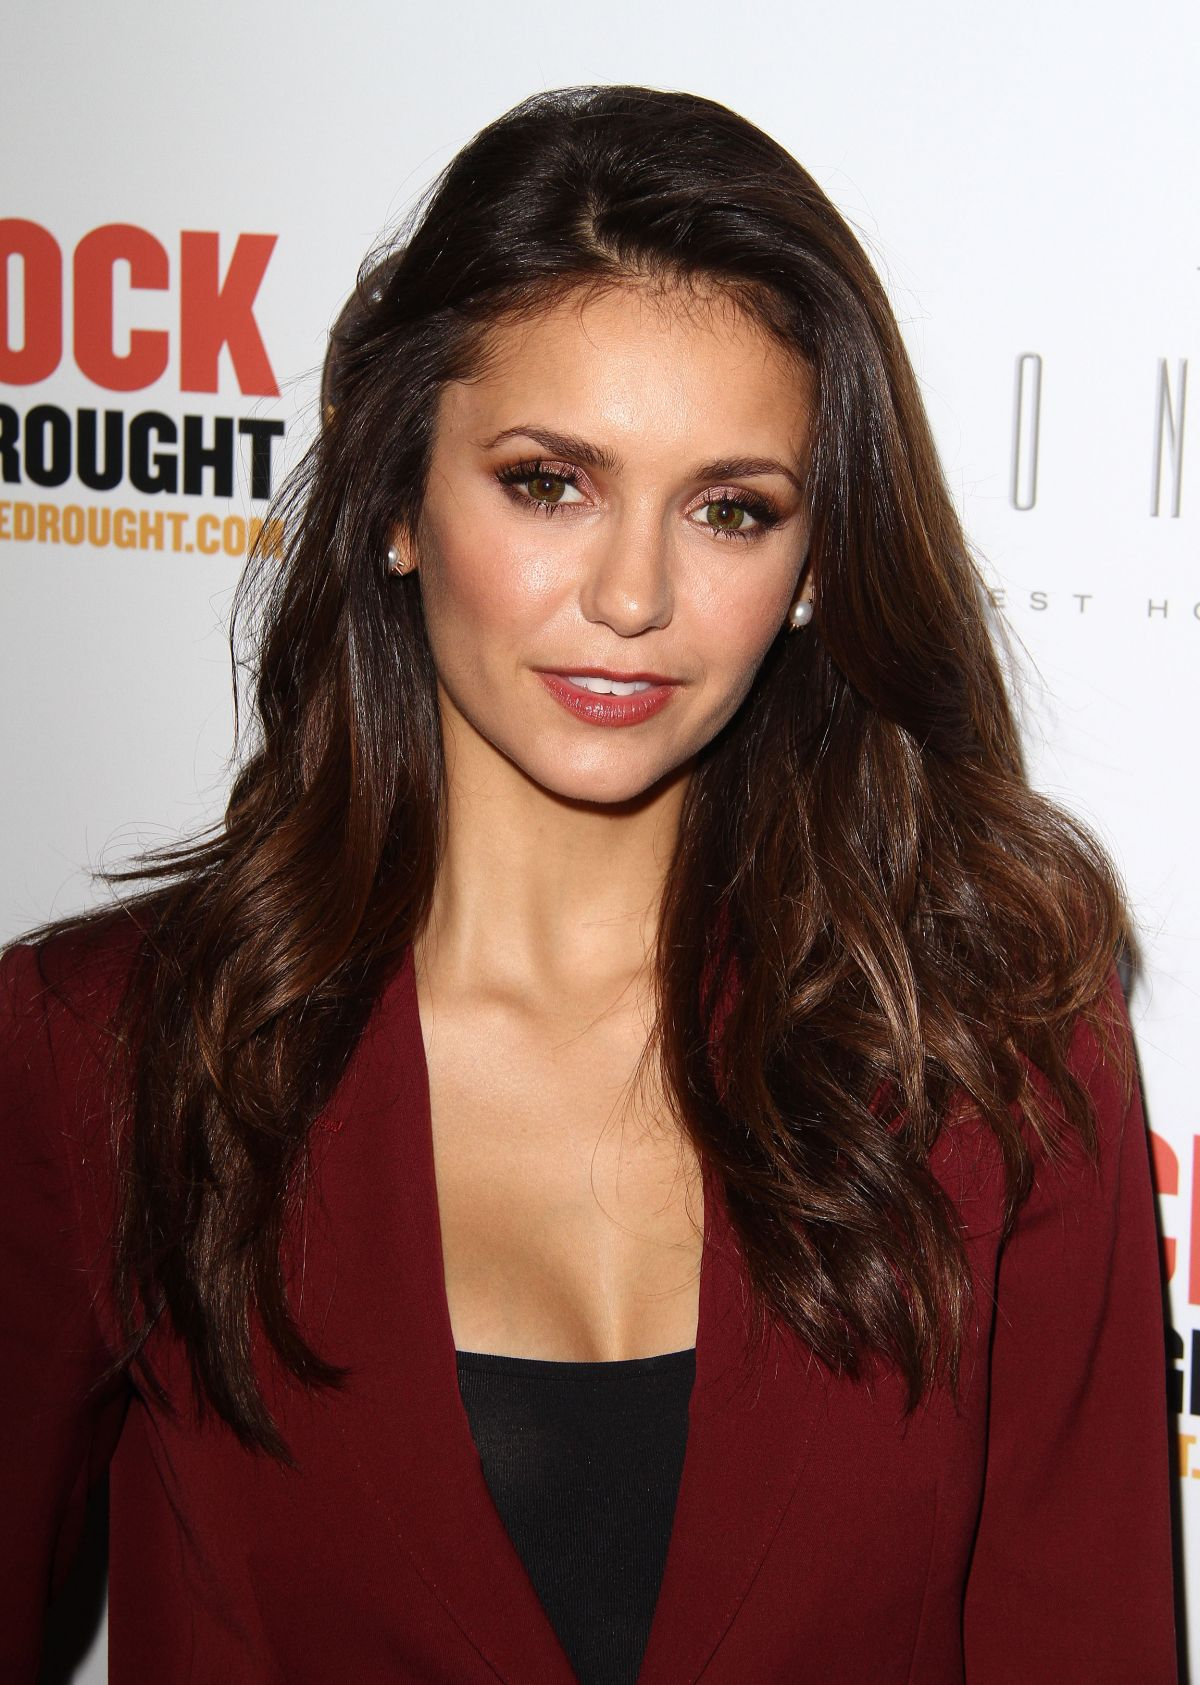 NINA DOBREV At The Final Girls Premiere In West Hollywood